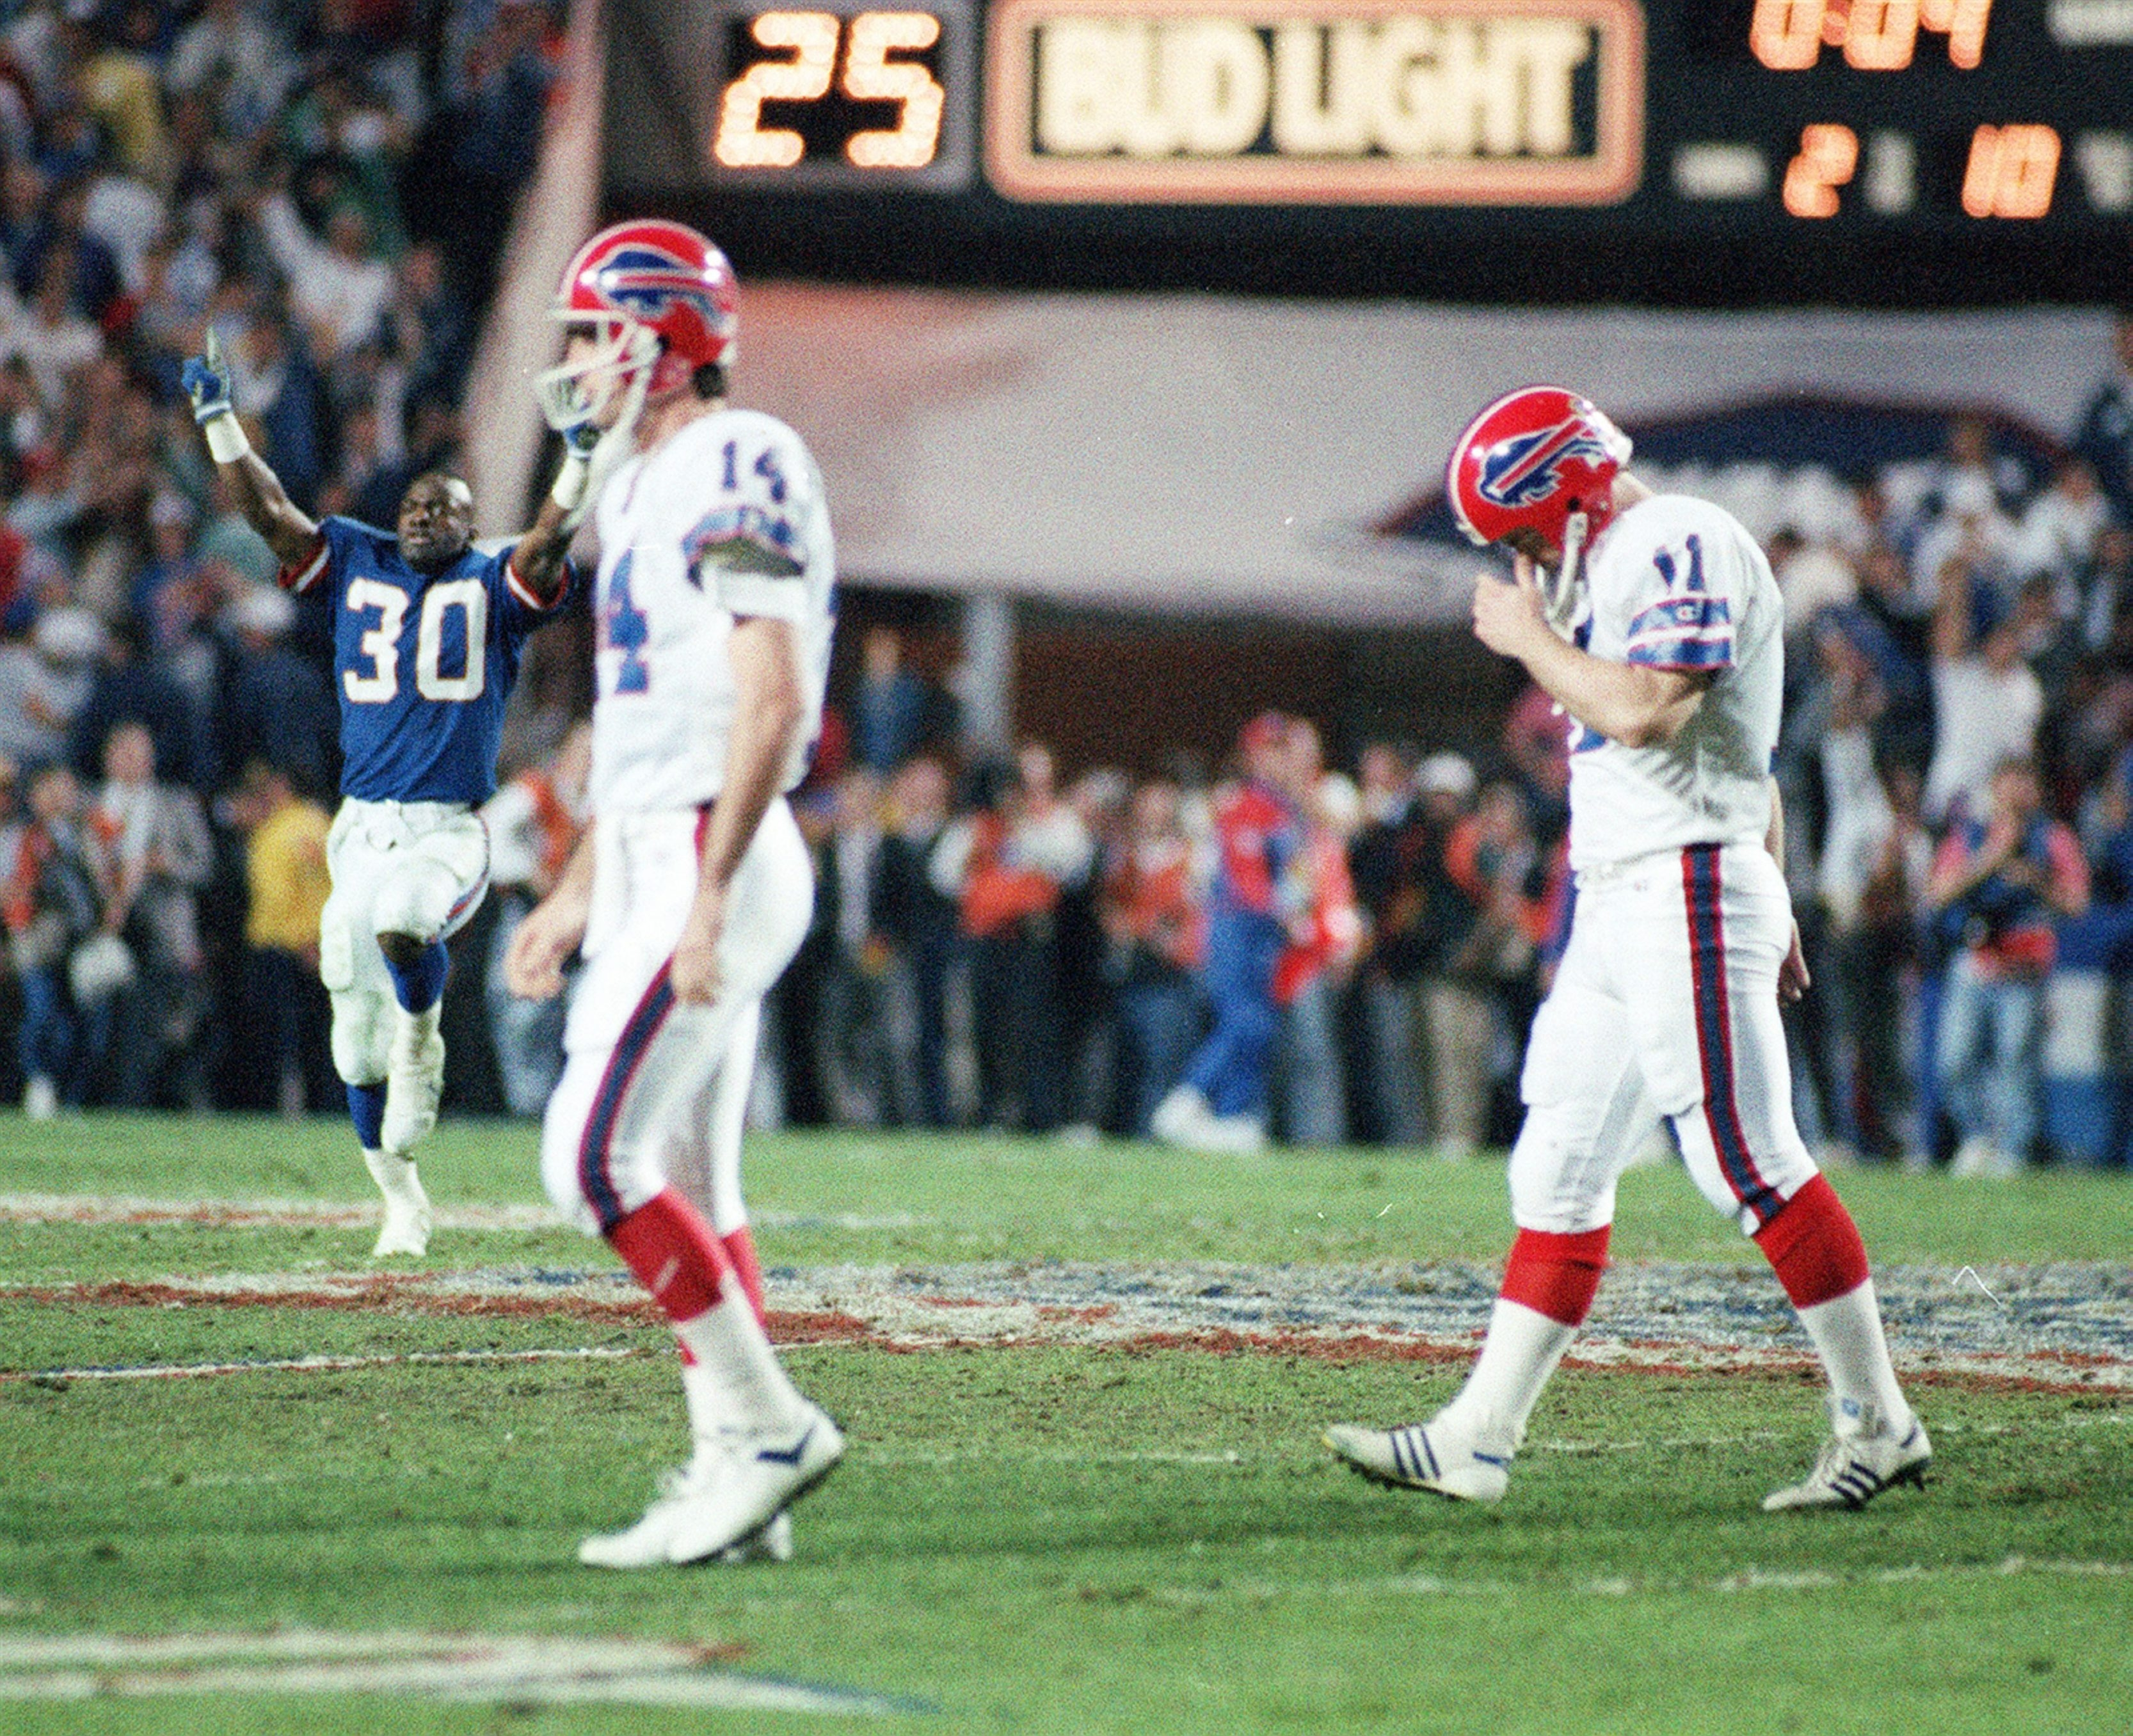 Frank Reich and Scott Norwood react after missing a 47-yard field goal in Super Bowl XXV to lose 20-19 to the New York Giants. (James P. McCoy/Buffalo News file photo)